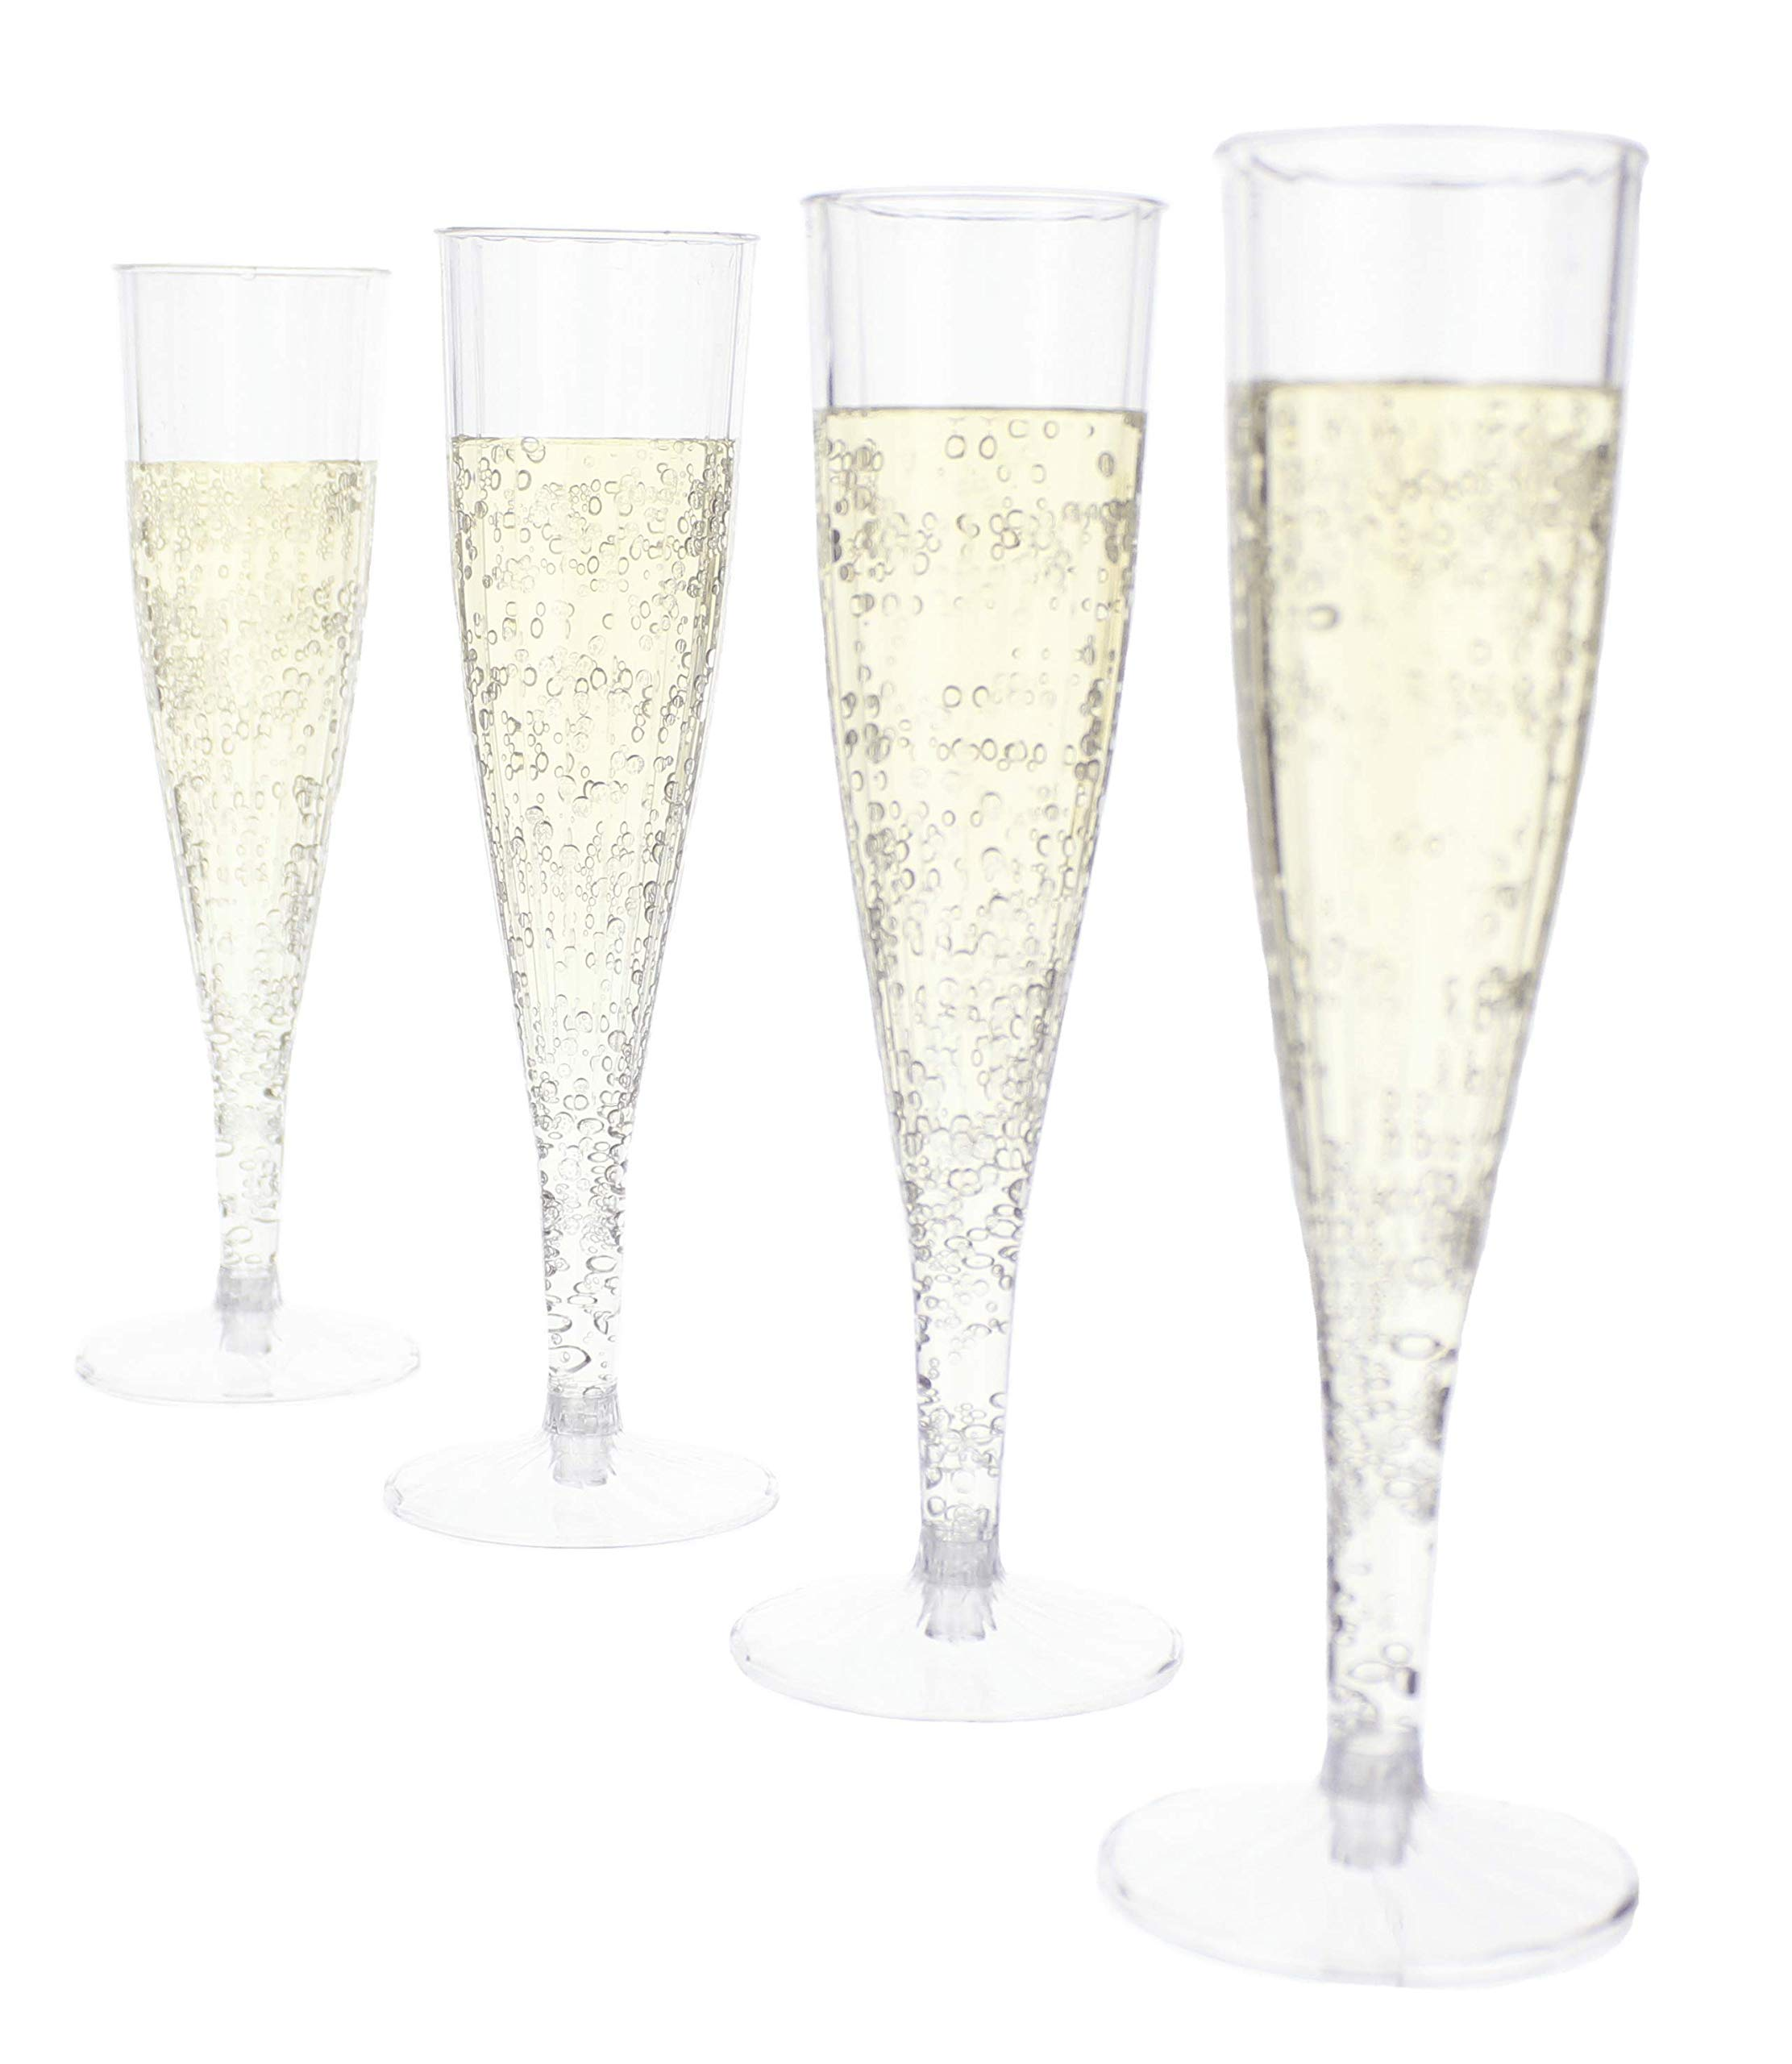 Disposable Champagne Flutes - Superior Quality Clear Plastic with Smooth Rim - 2 Piece Flute and Base - Reusable - Ideal for Weddings, Parties and Picnics - 24 Pack